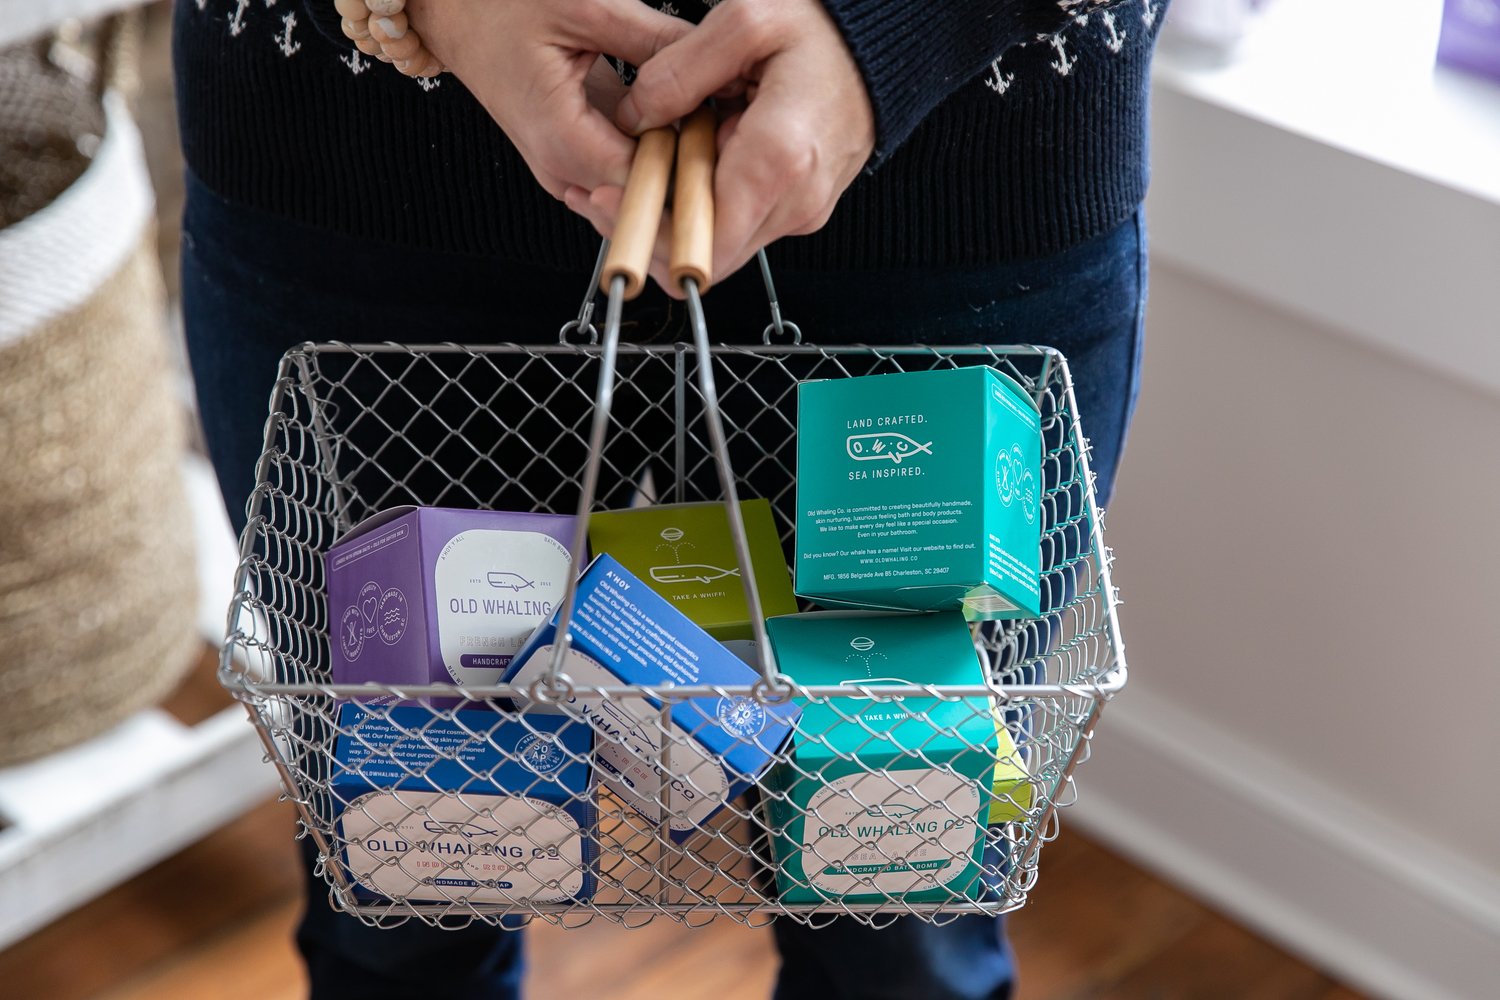 Women holding a basket of Bar Soaps and Bath Bombs